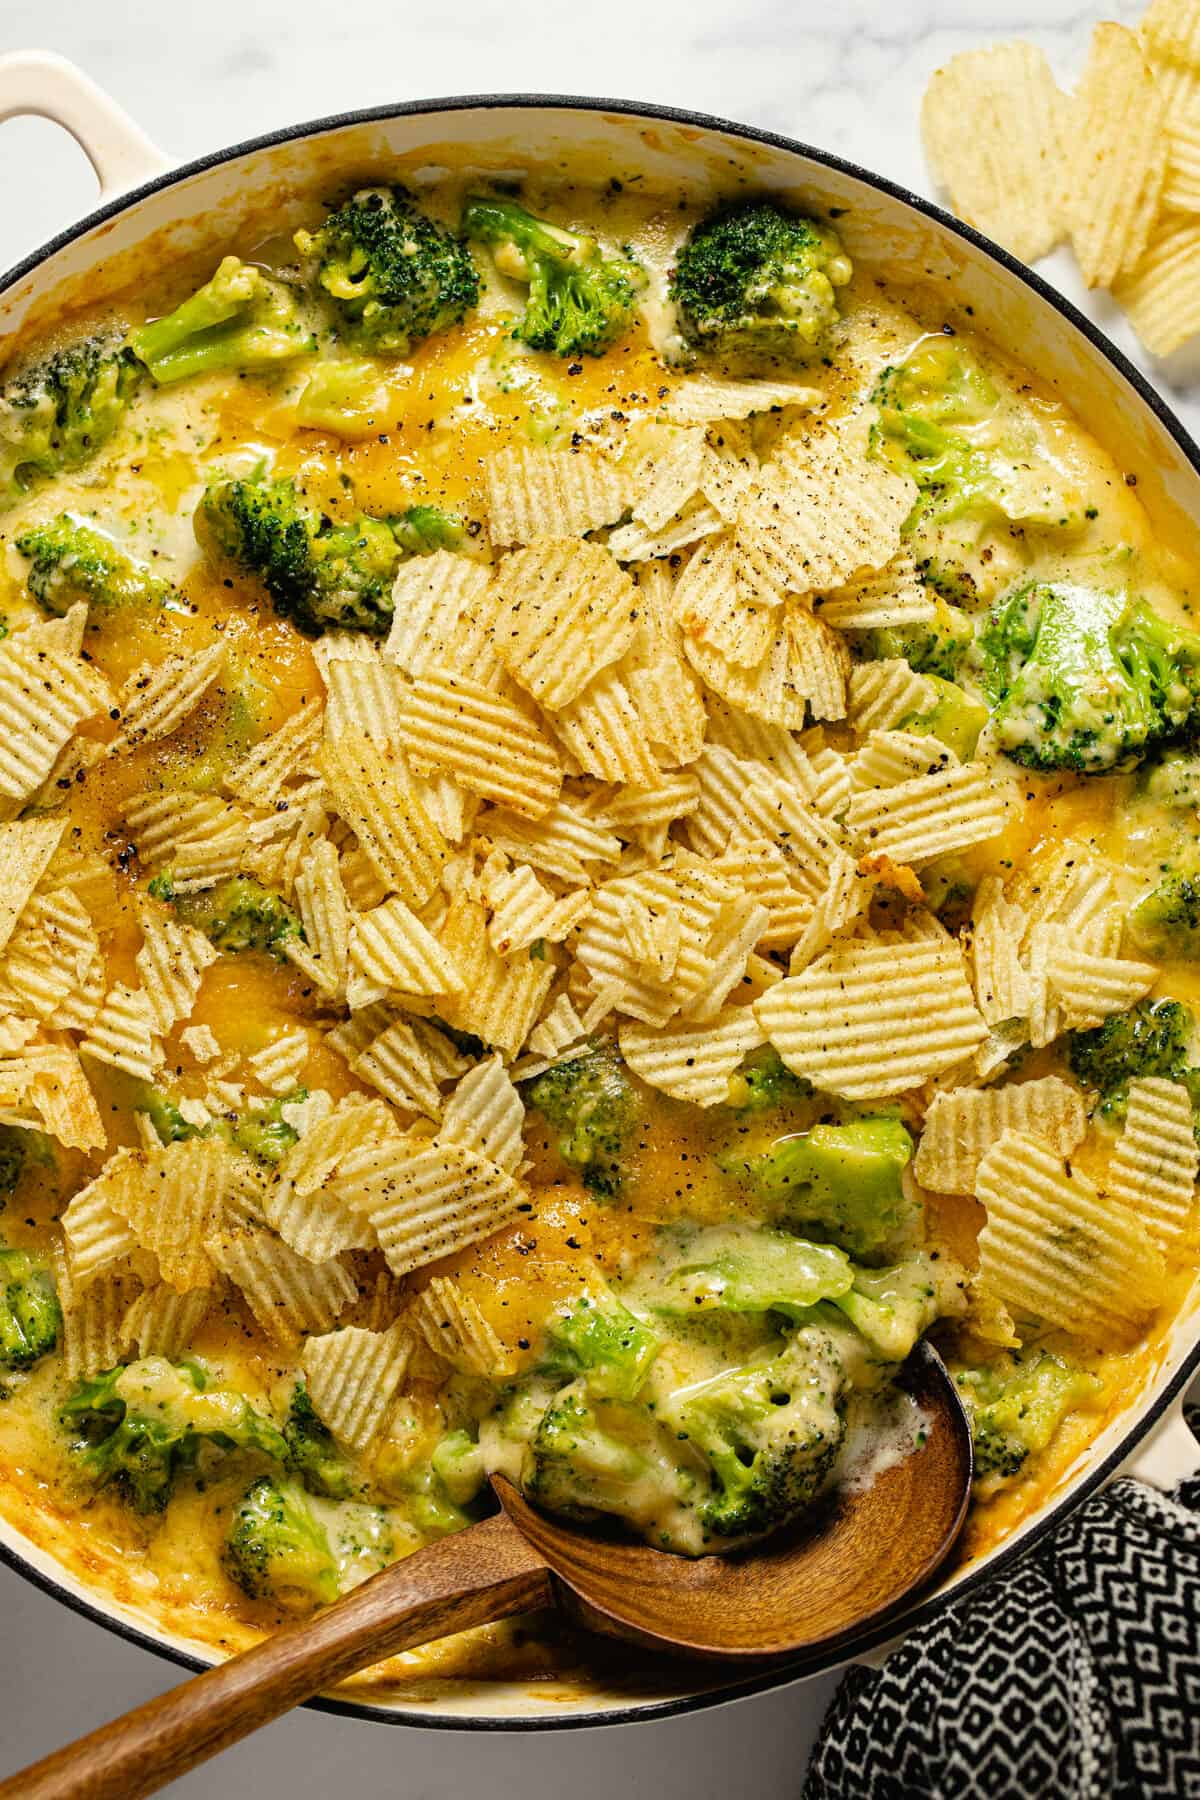 Overhead shot of a large white pan filled with broccoli cheese casserole topped with potato chips